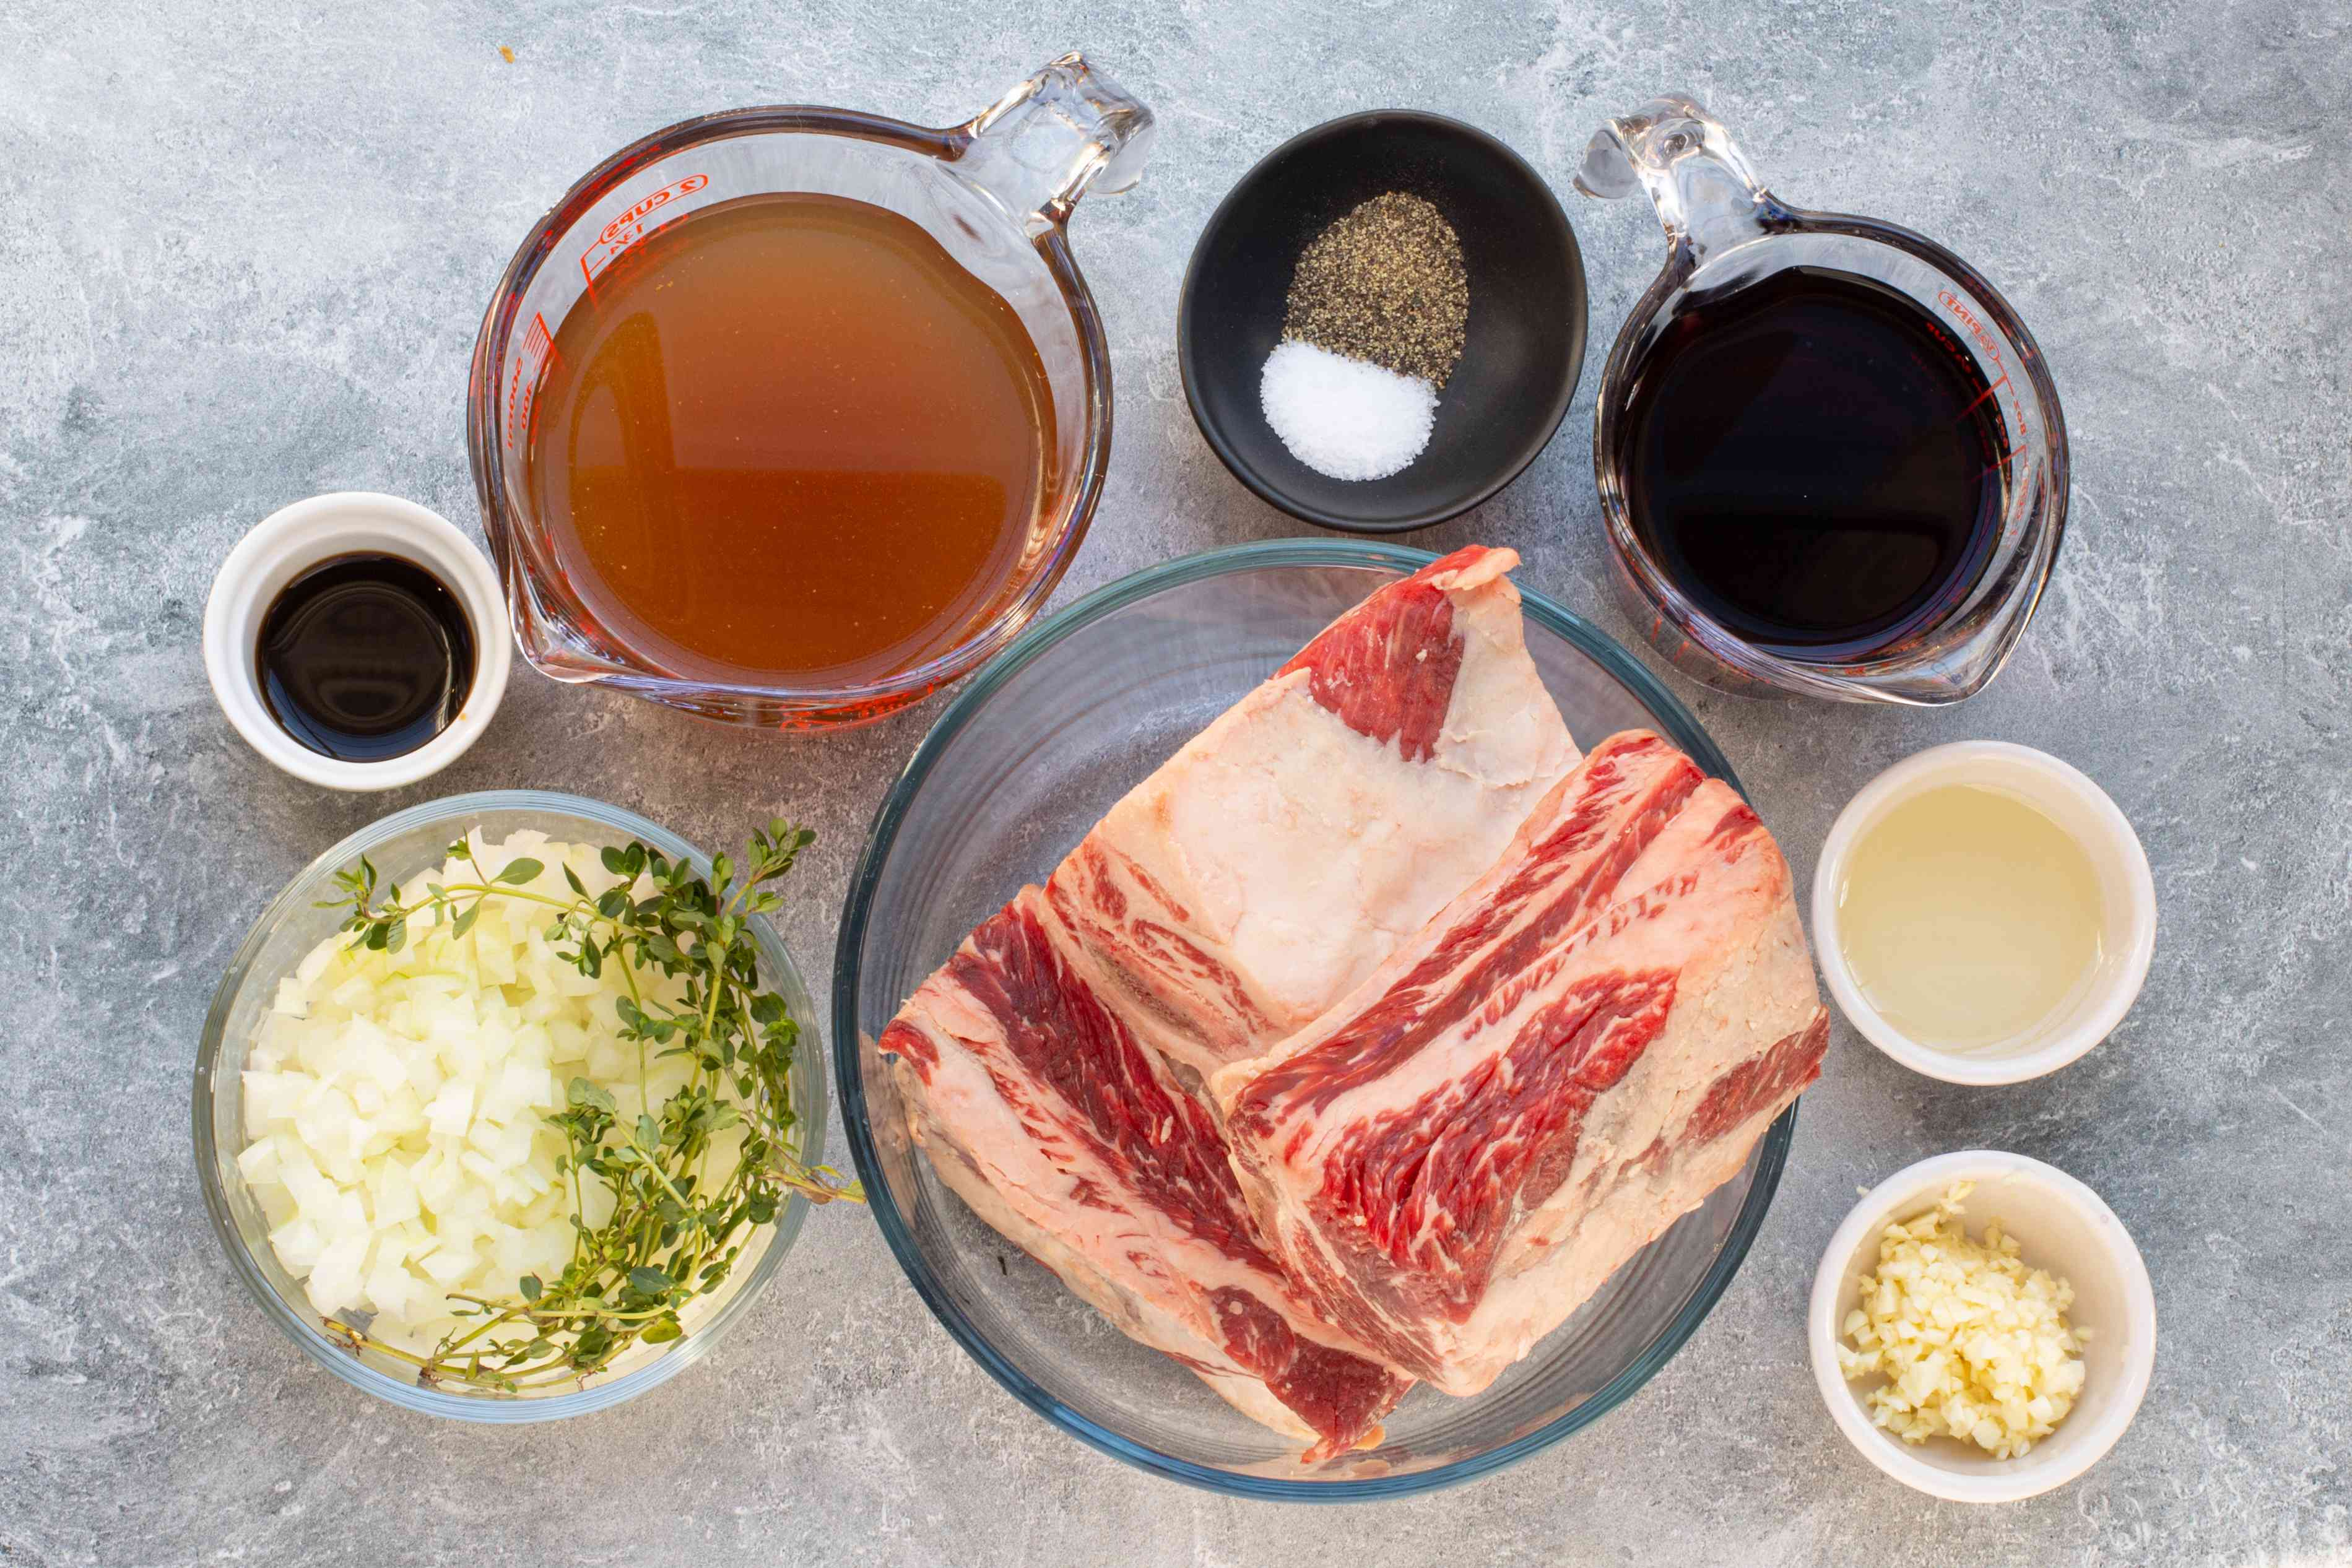 ingredients for oven braised short ribs